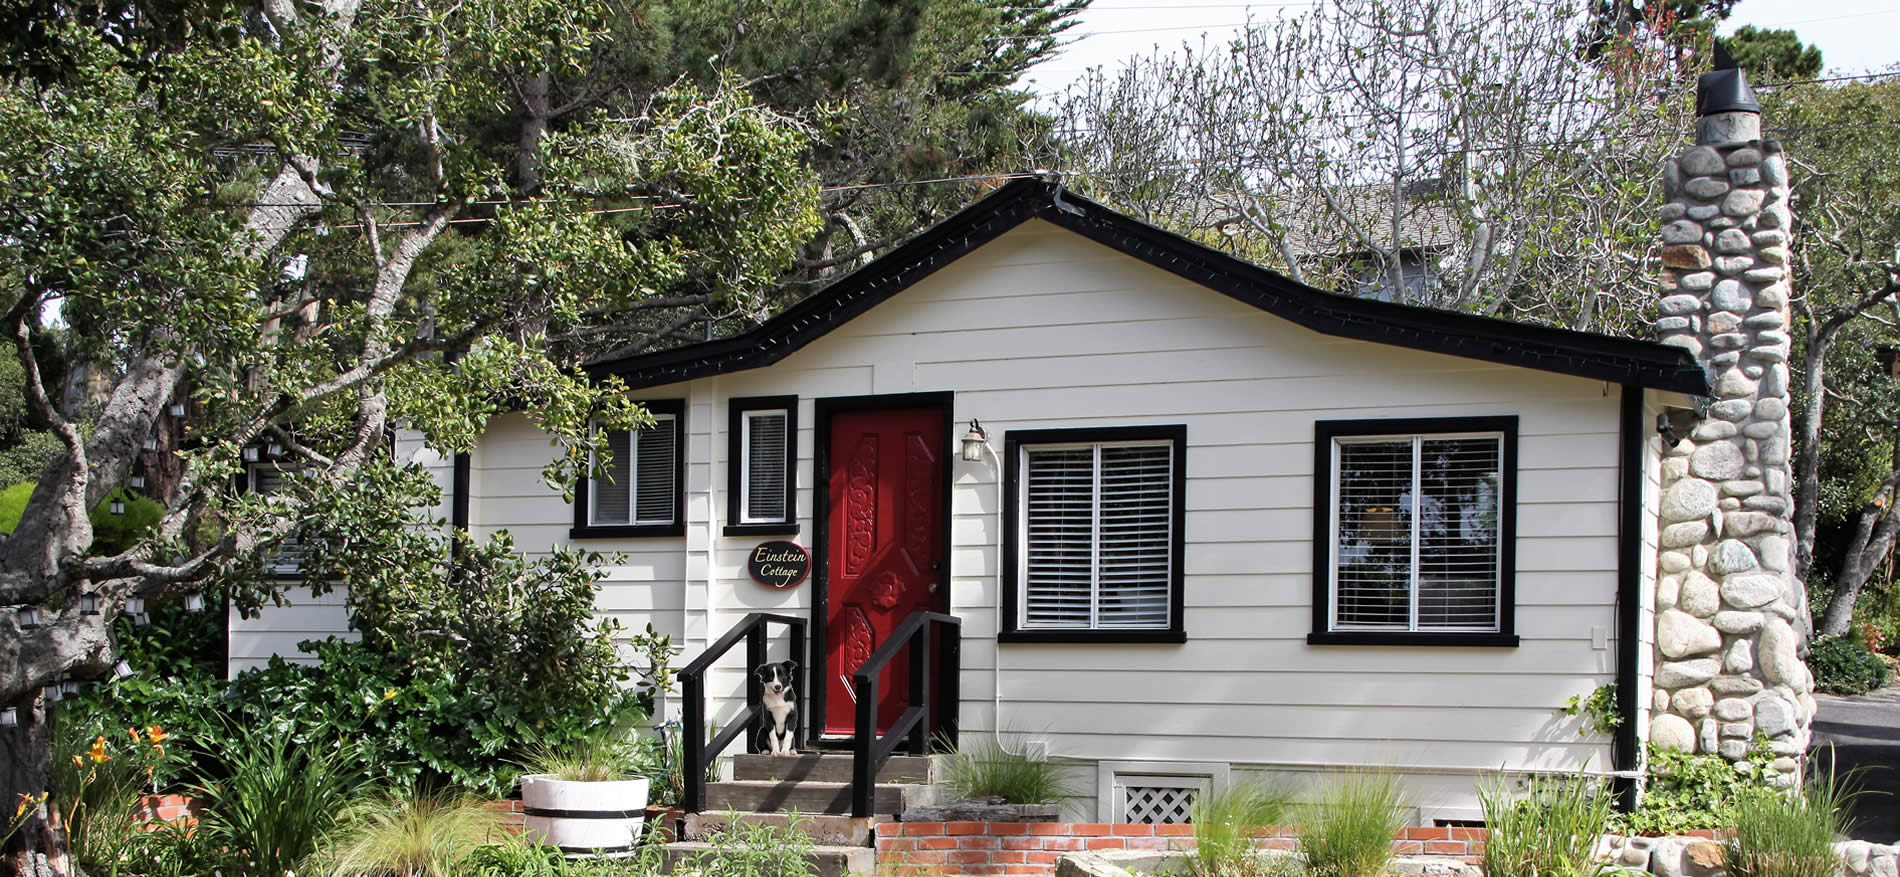 pet-friendly carmel cottages - dog sitting on step of cottage with red door